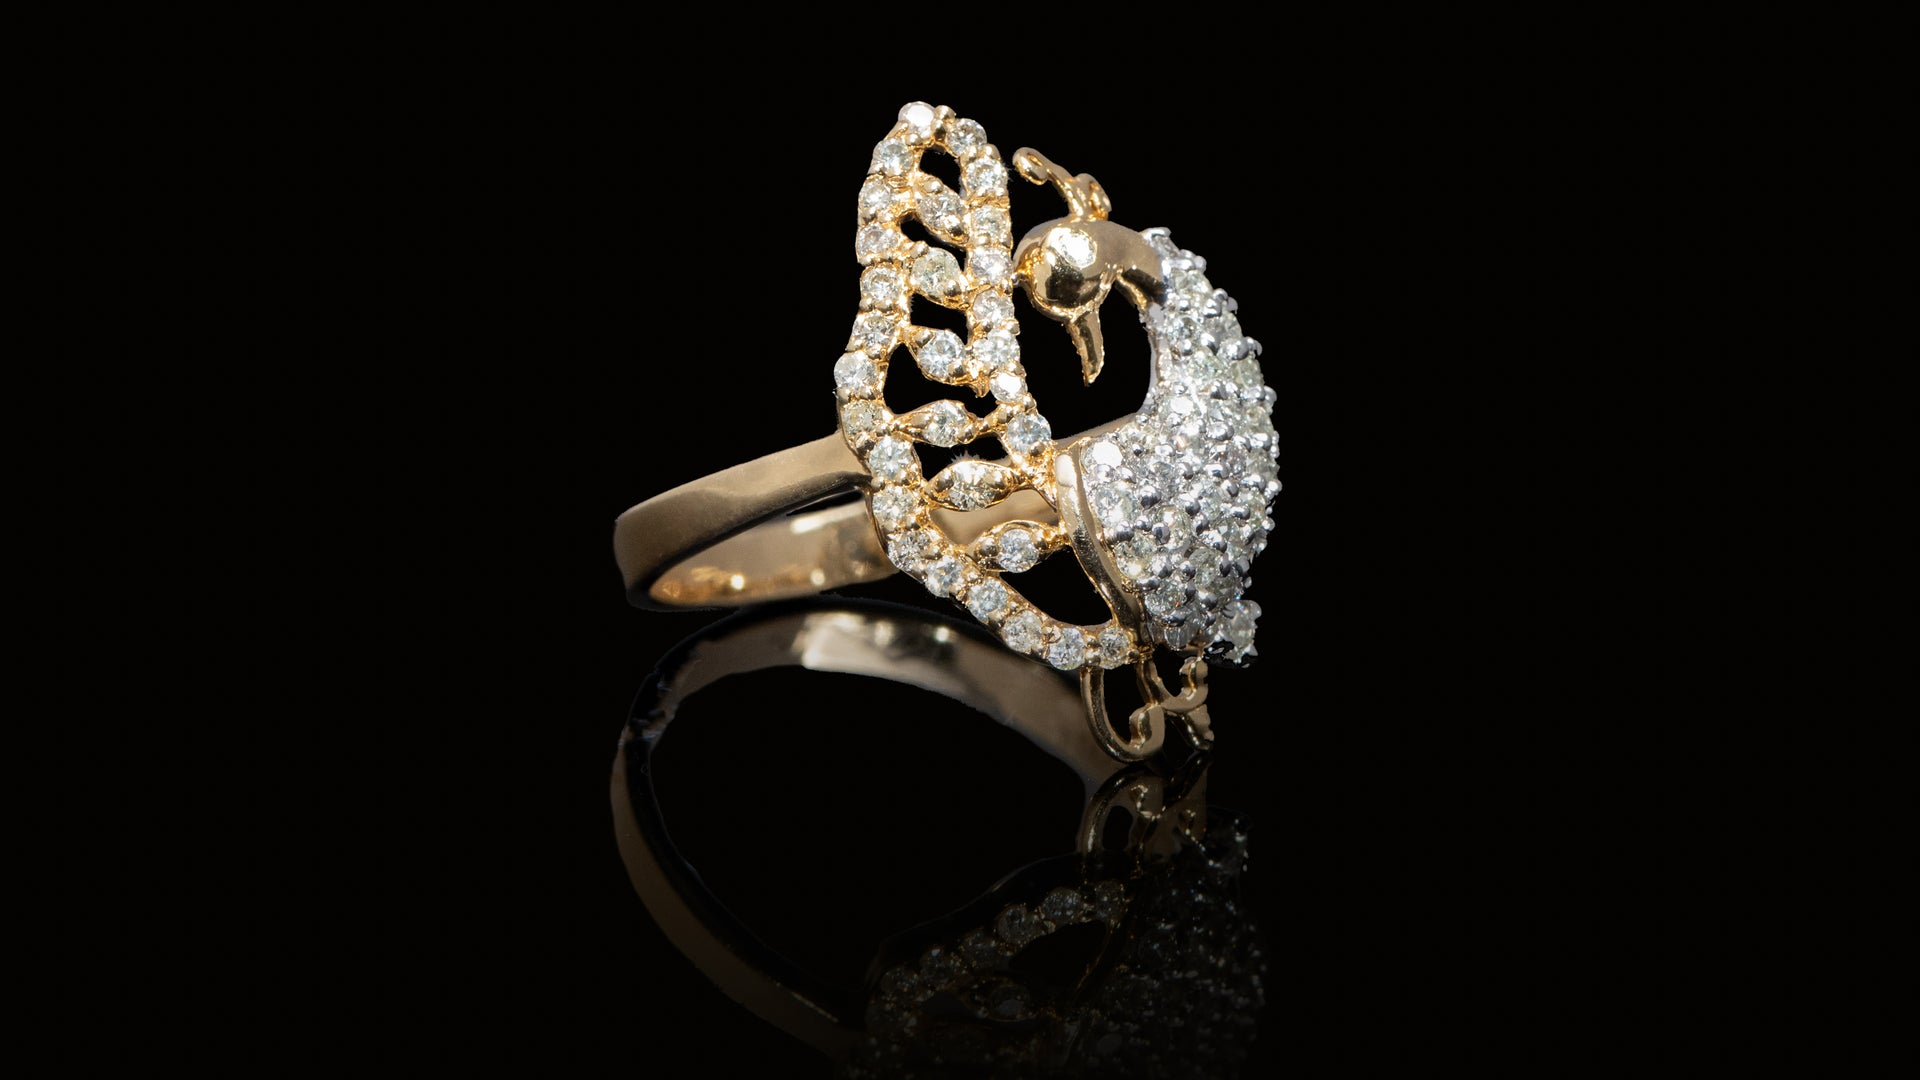 [SPECIAL] 14K Yellow Gold Peacock Diamond Ring